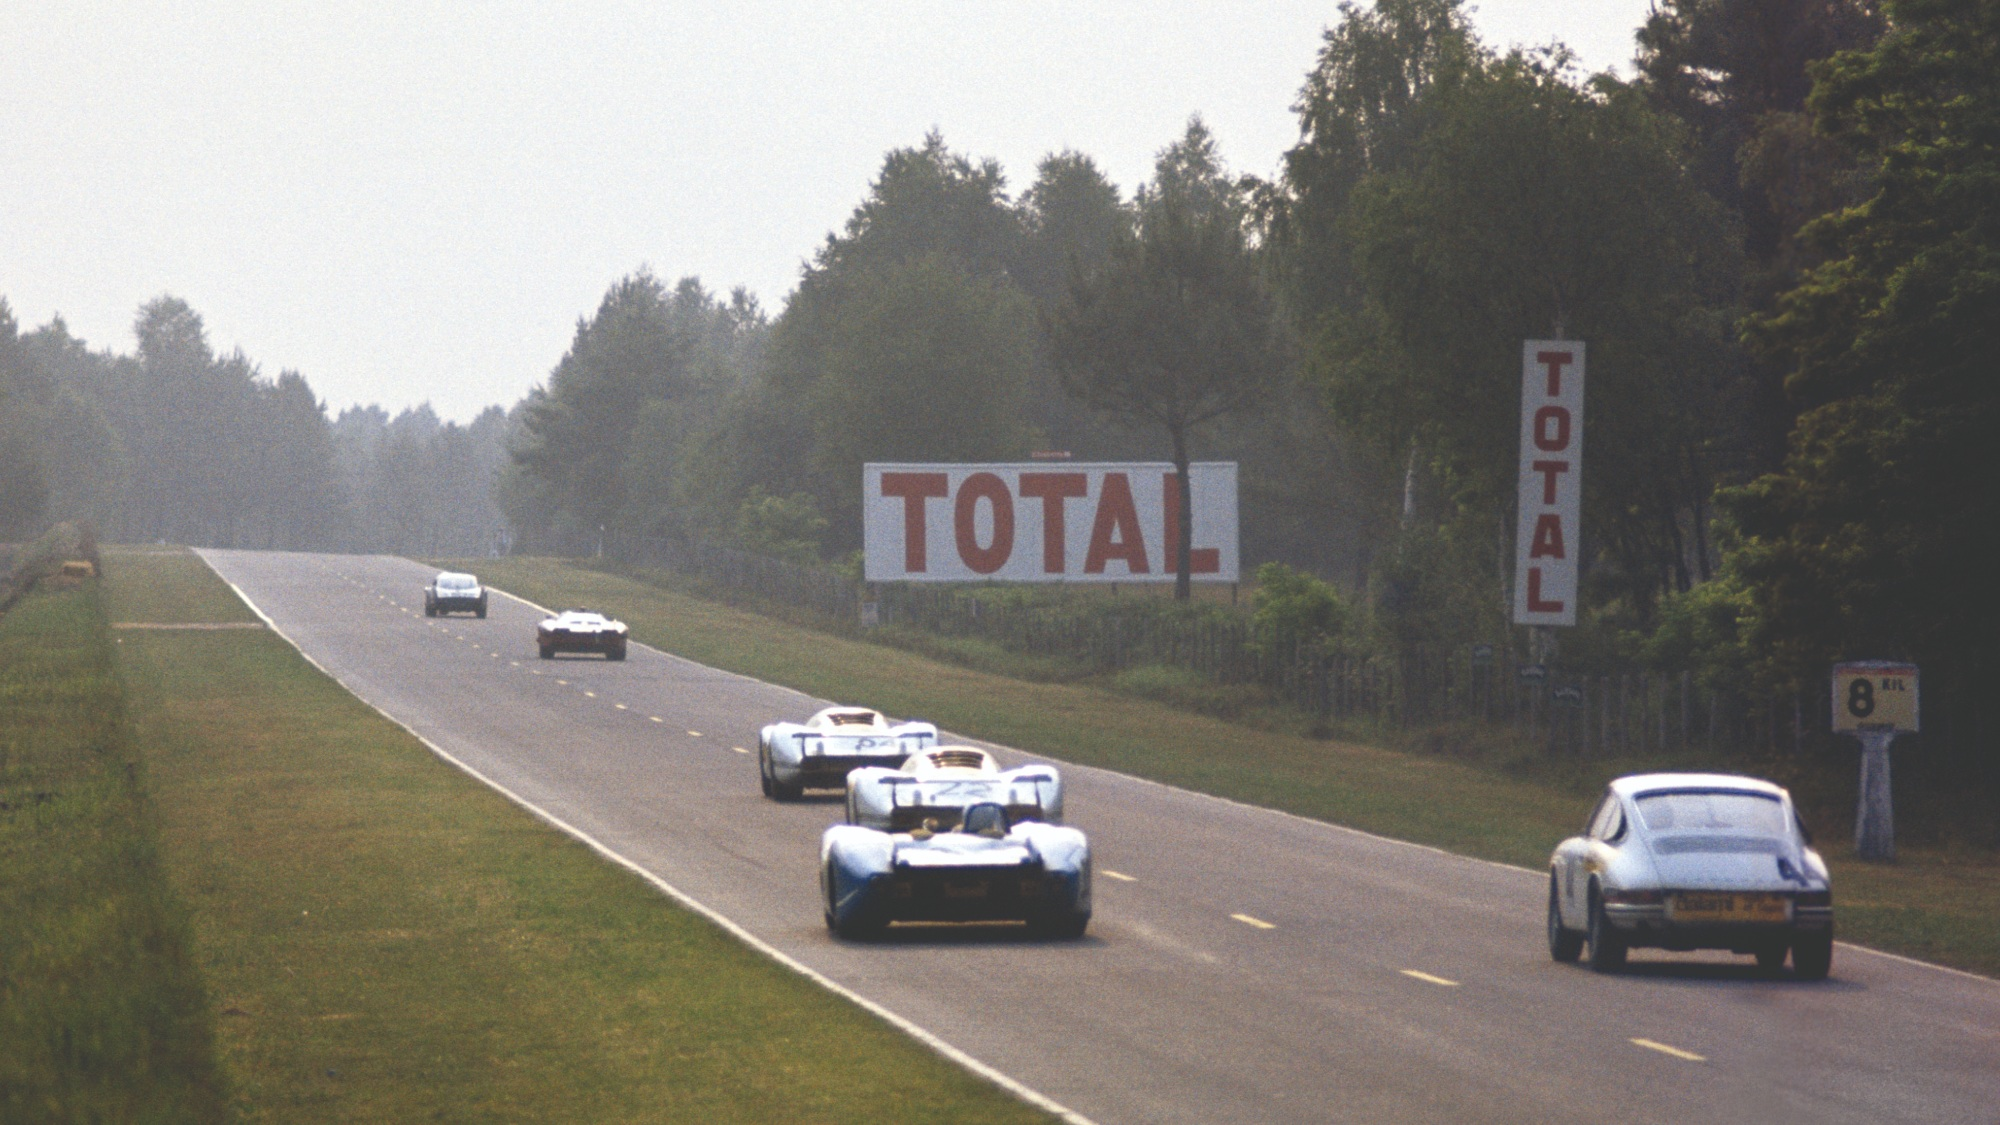 Cars head towards Indianapolis during the 1969 Le Mans 24 Hours